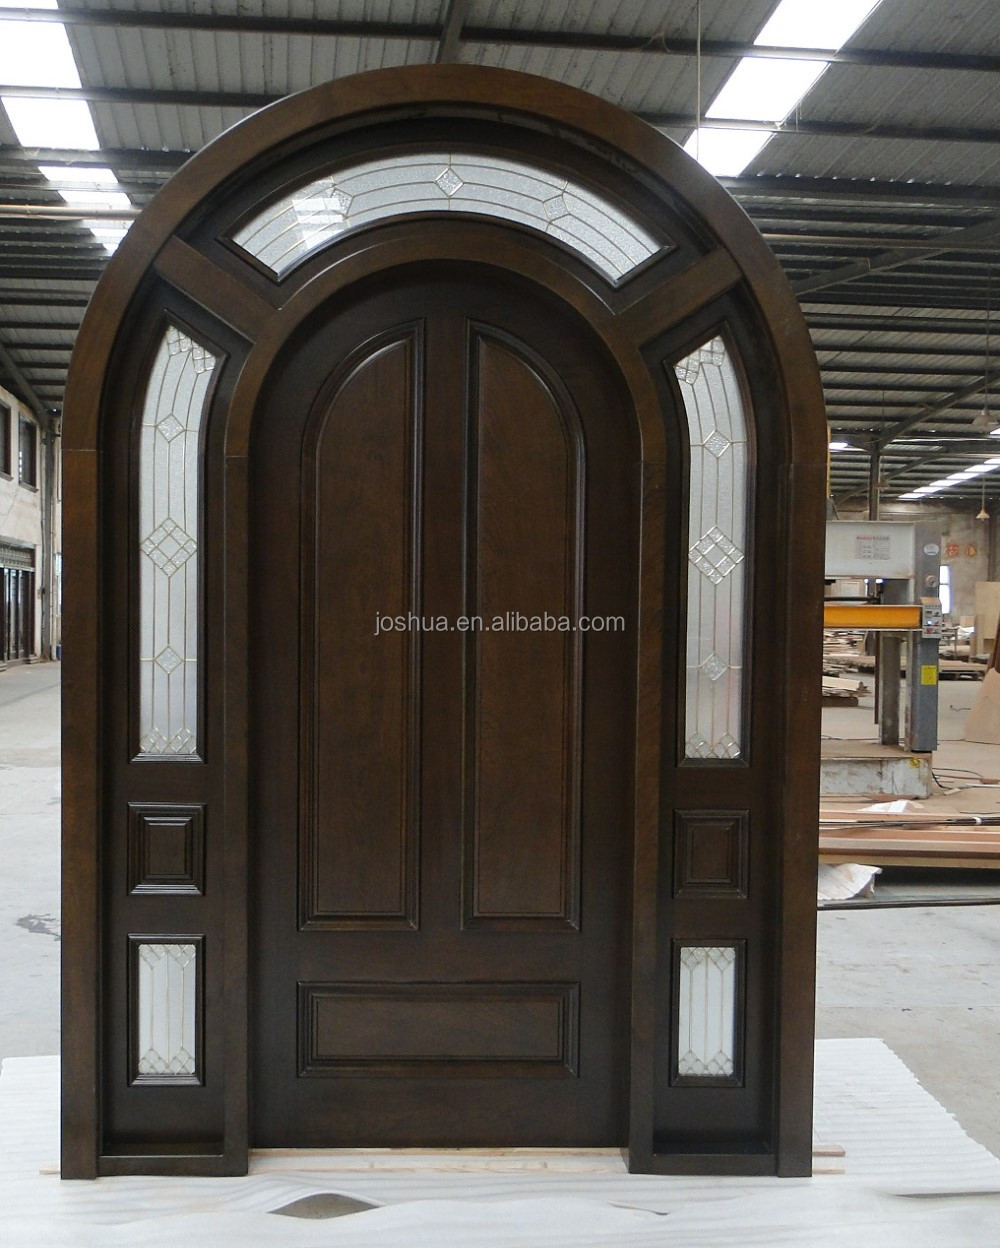 Where To Buy A Front Door: Arched Top African Mahogany Solid Wood Entry Door